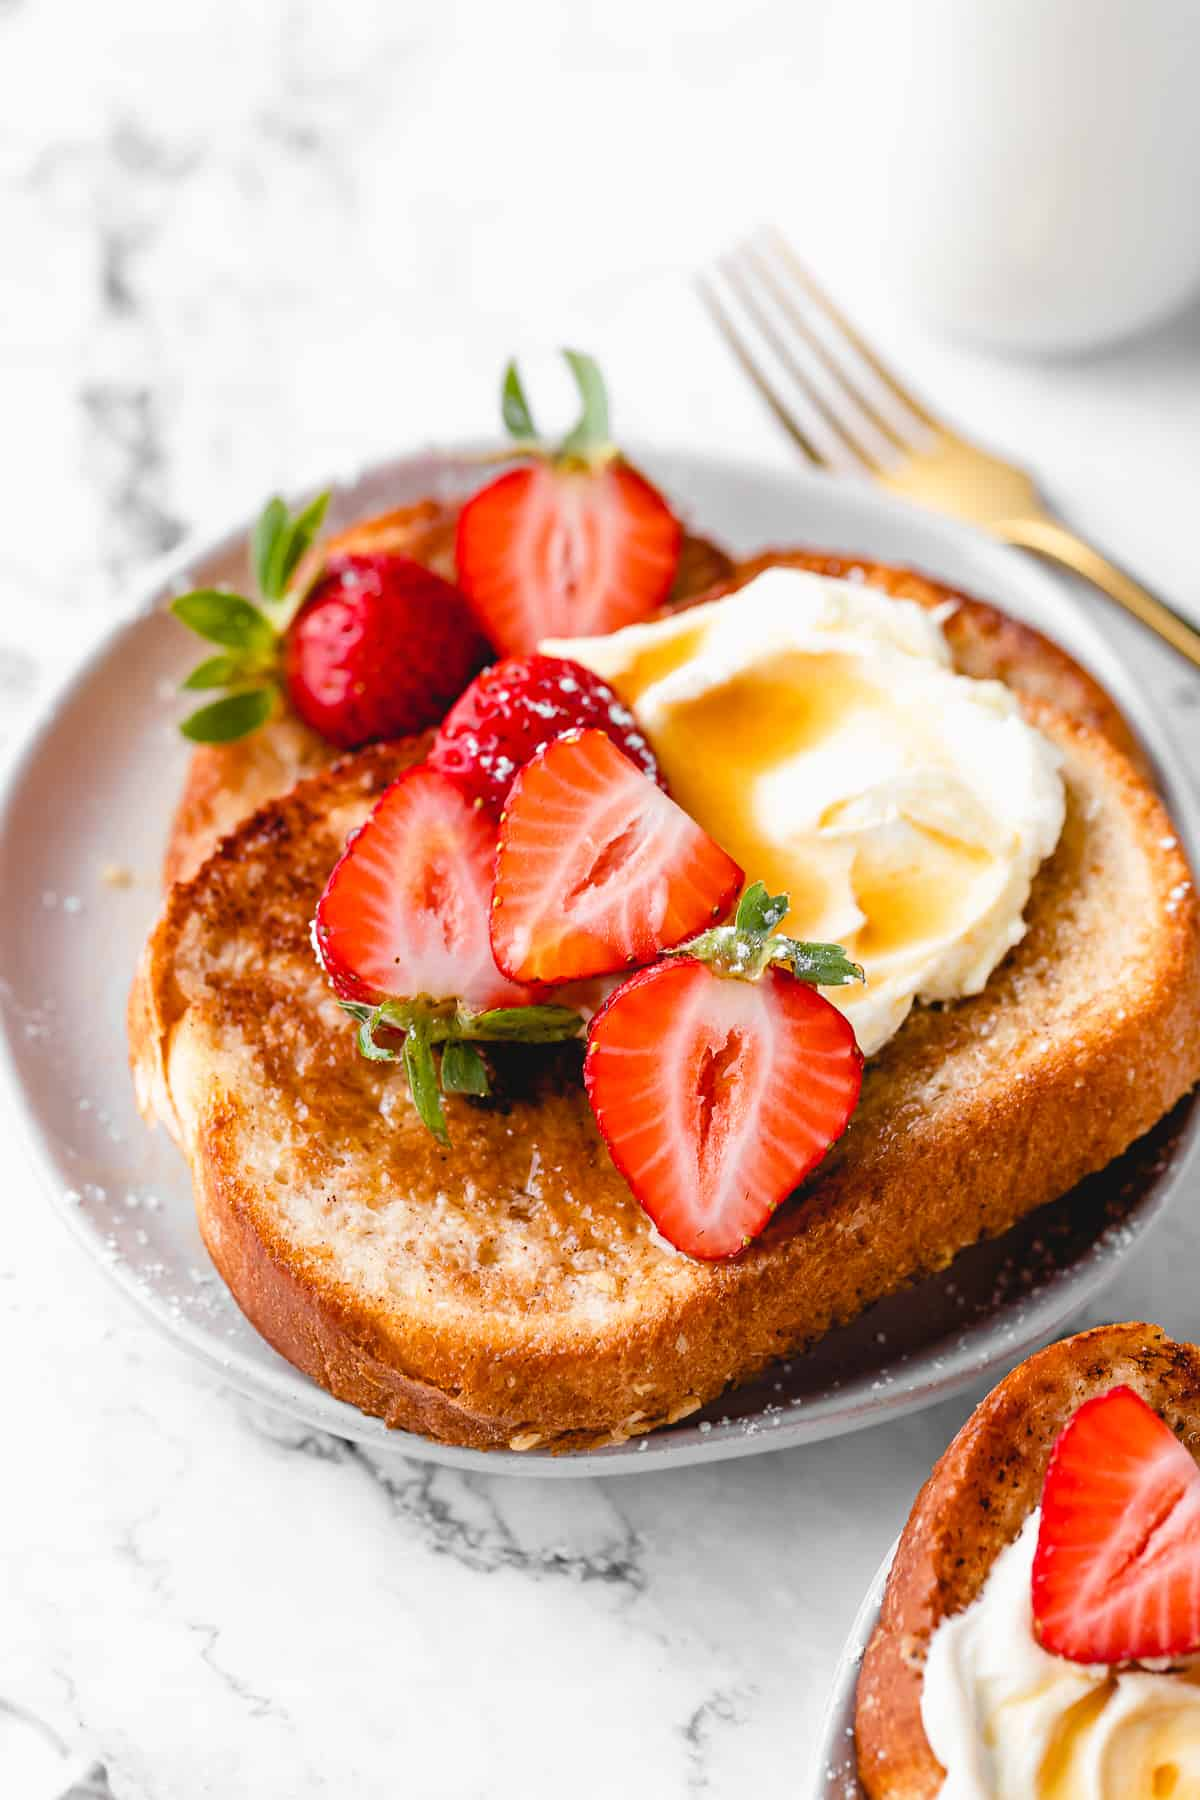 French toast with whipped cream, maple syrup, and strawberries.